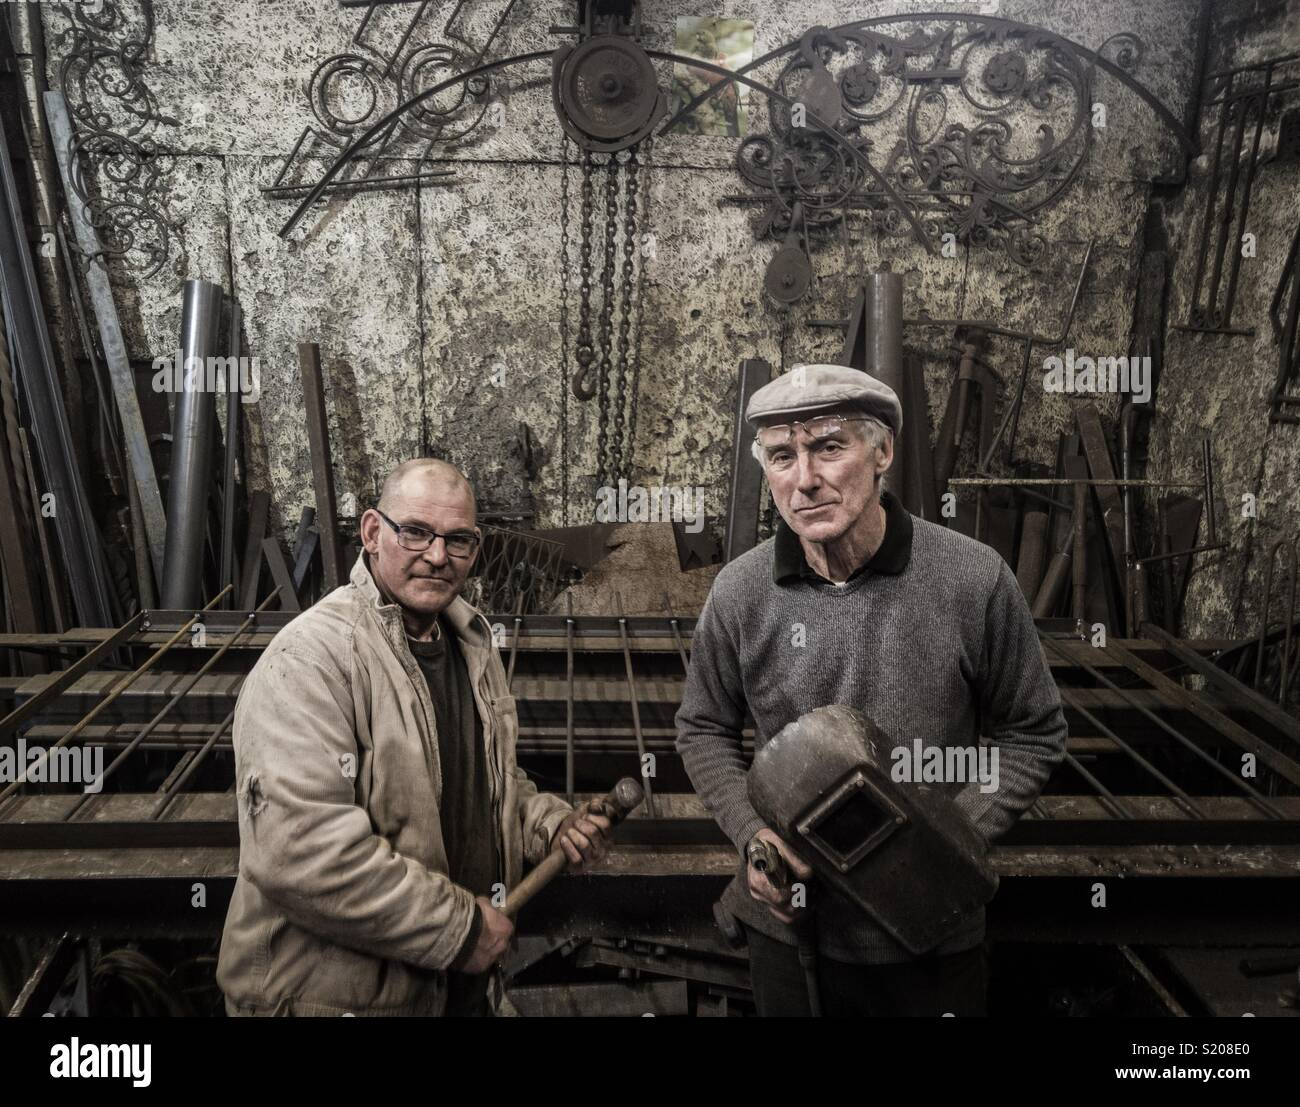 Peter Clutterbuck, Designer Blacksmith and one of his team at his Southsea workshop - Stock Image